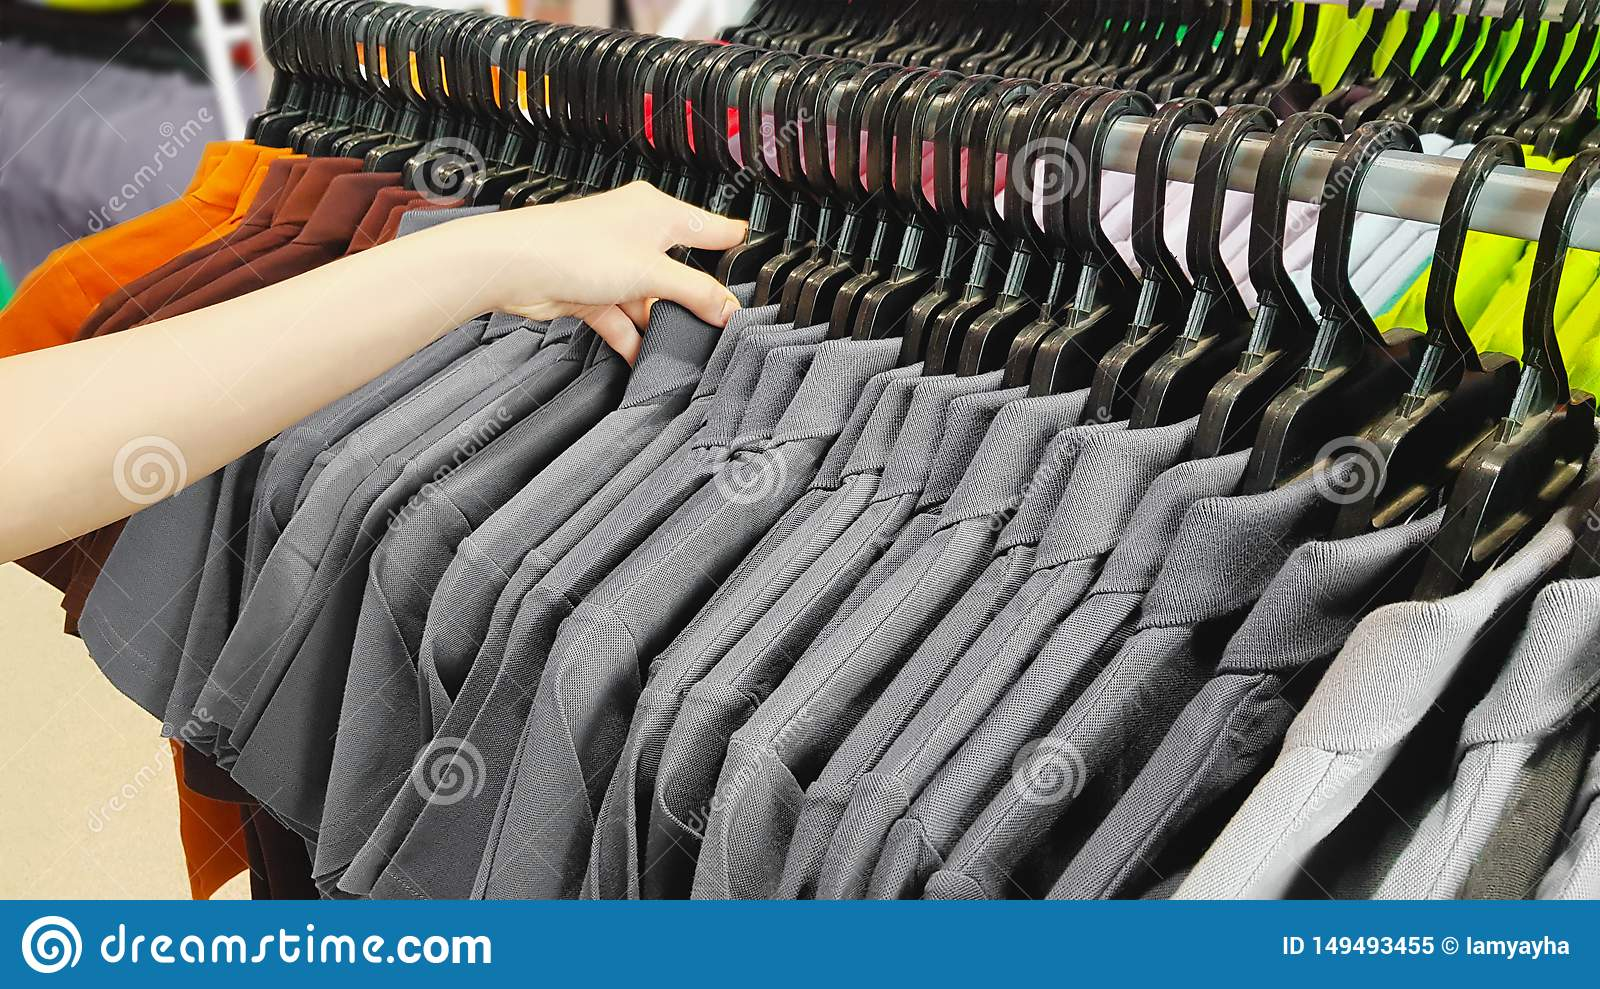 Hand of Customer Choosing Discount Clothes in a Shopping Mall. People Searching or Buying Cheap Cotton Gray T-Shirt on Rack Hanger